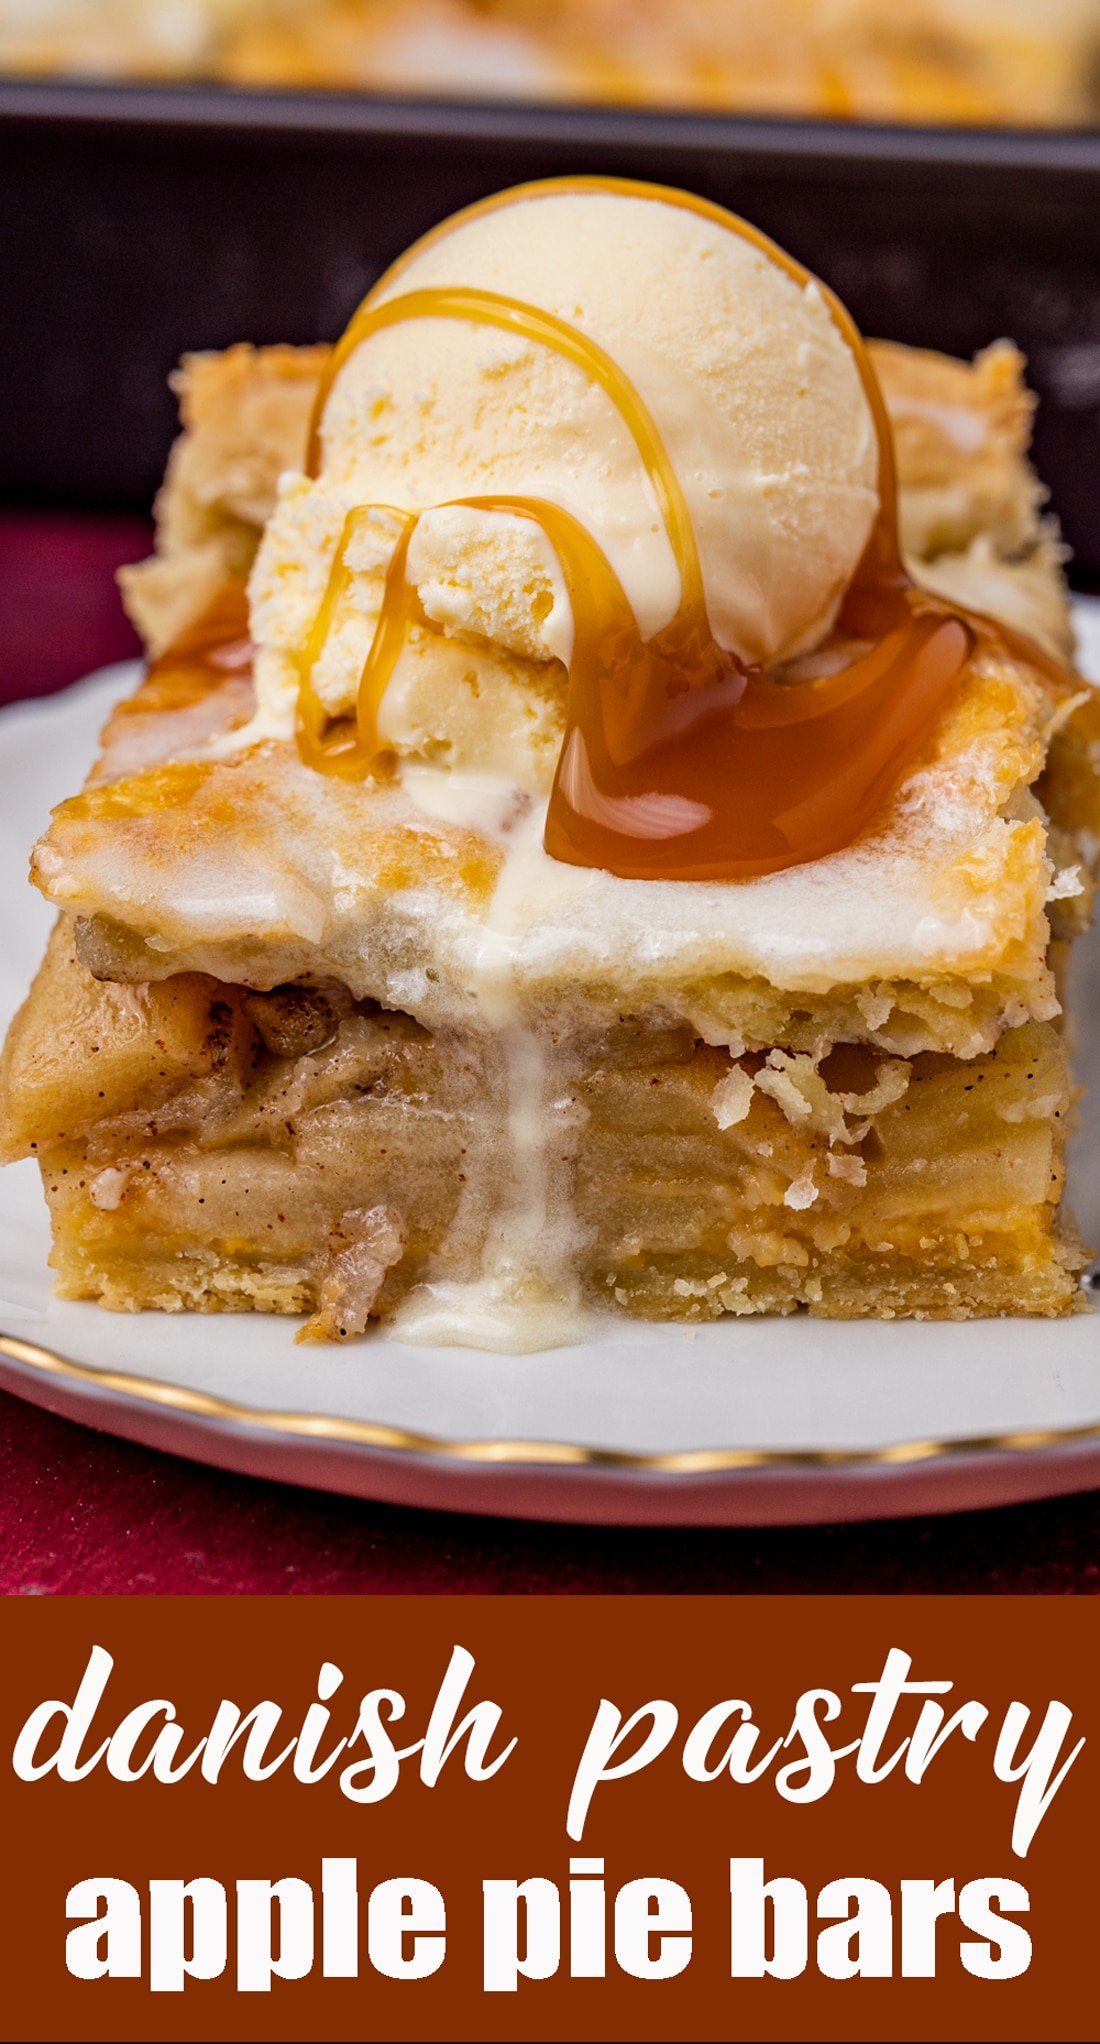 These apple pie bars start with homemade danish pastry with loads of apples baked inside. The almond glaze is a must on these apple pie bars. This is one of the best apple recipes to make for a weekend brunch or dessert. via @tastesoflizzyt